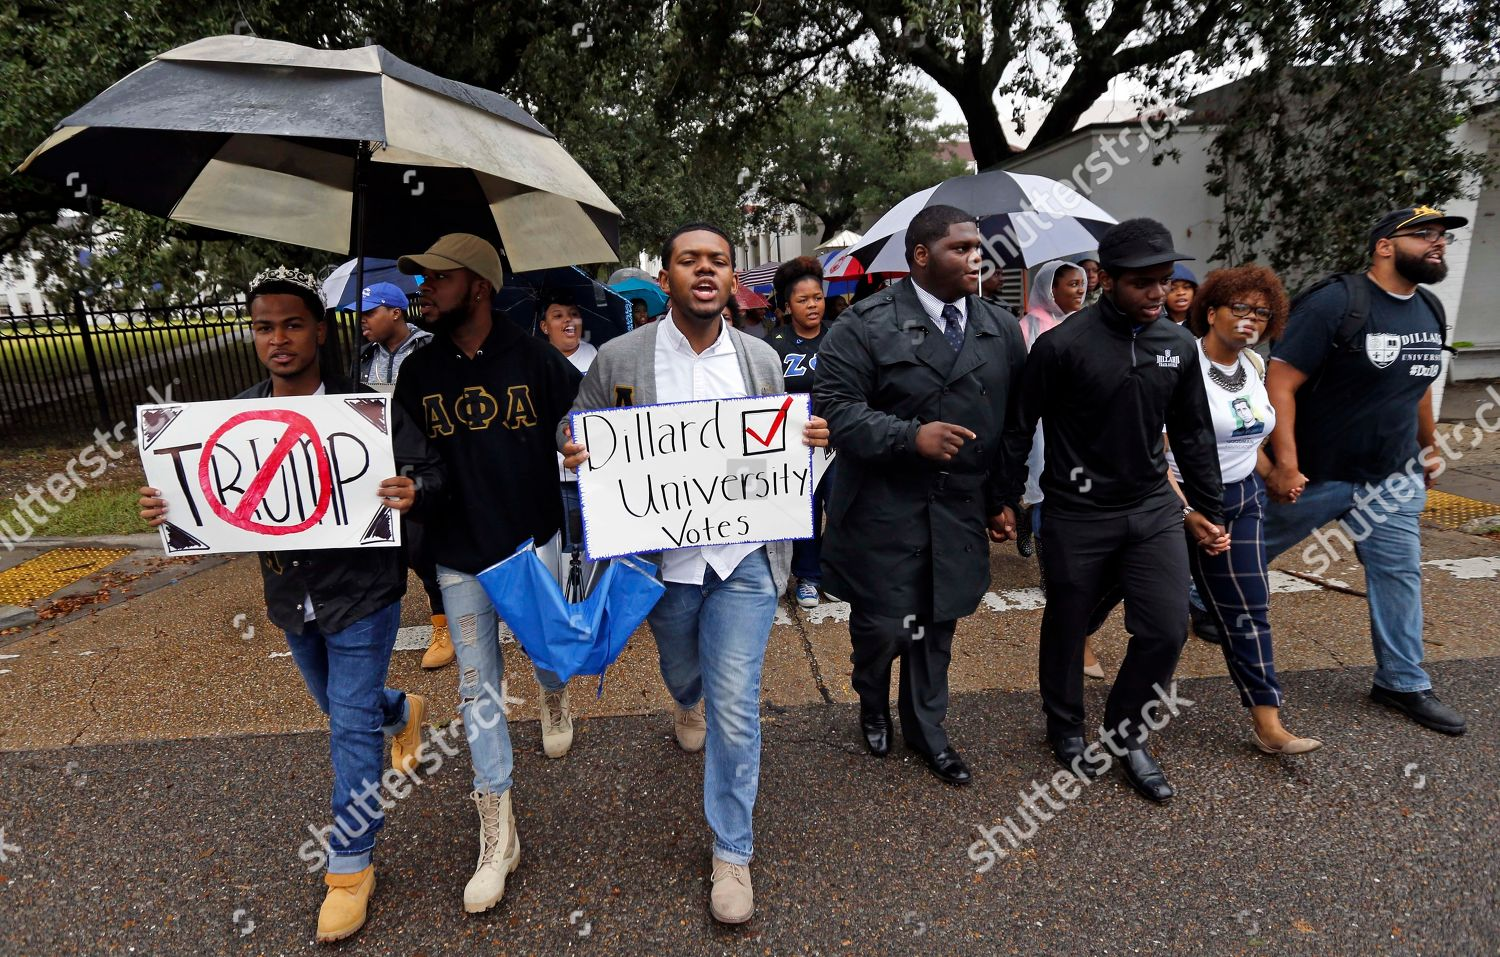 Dillard University students march unison polling place Editorial